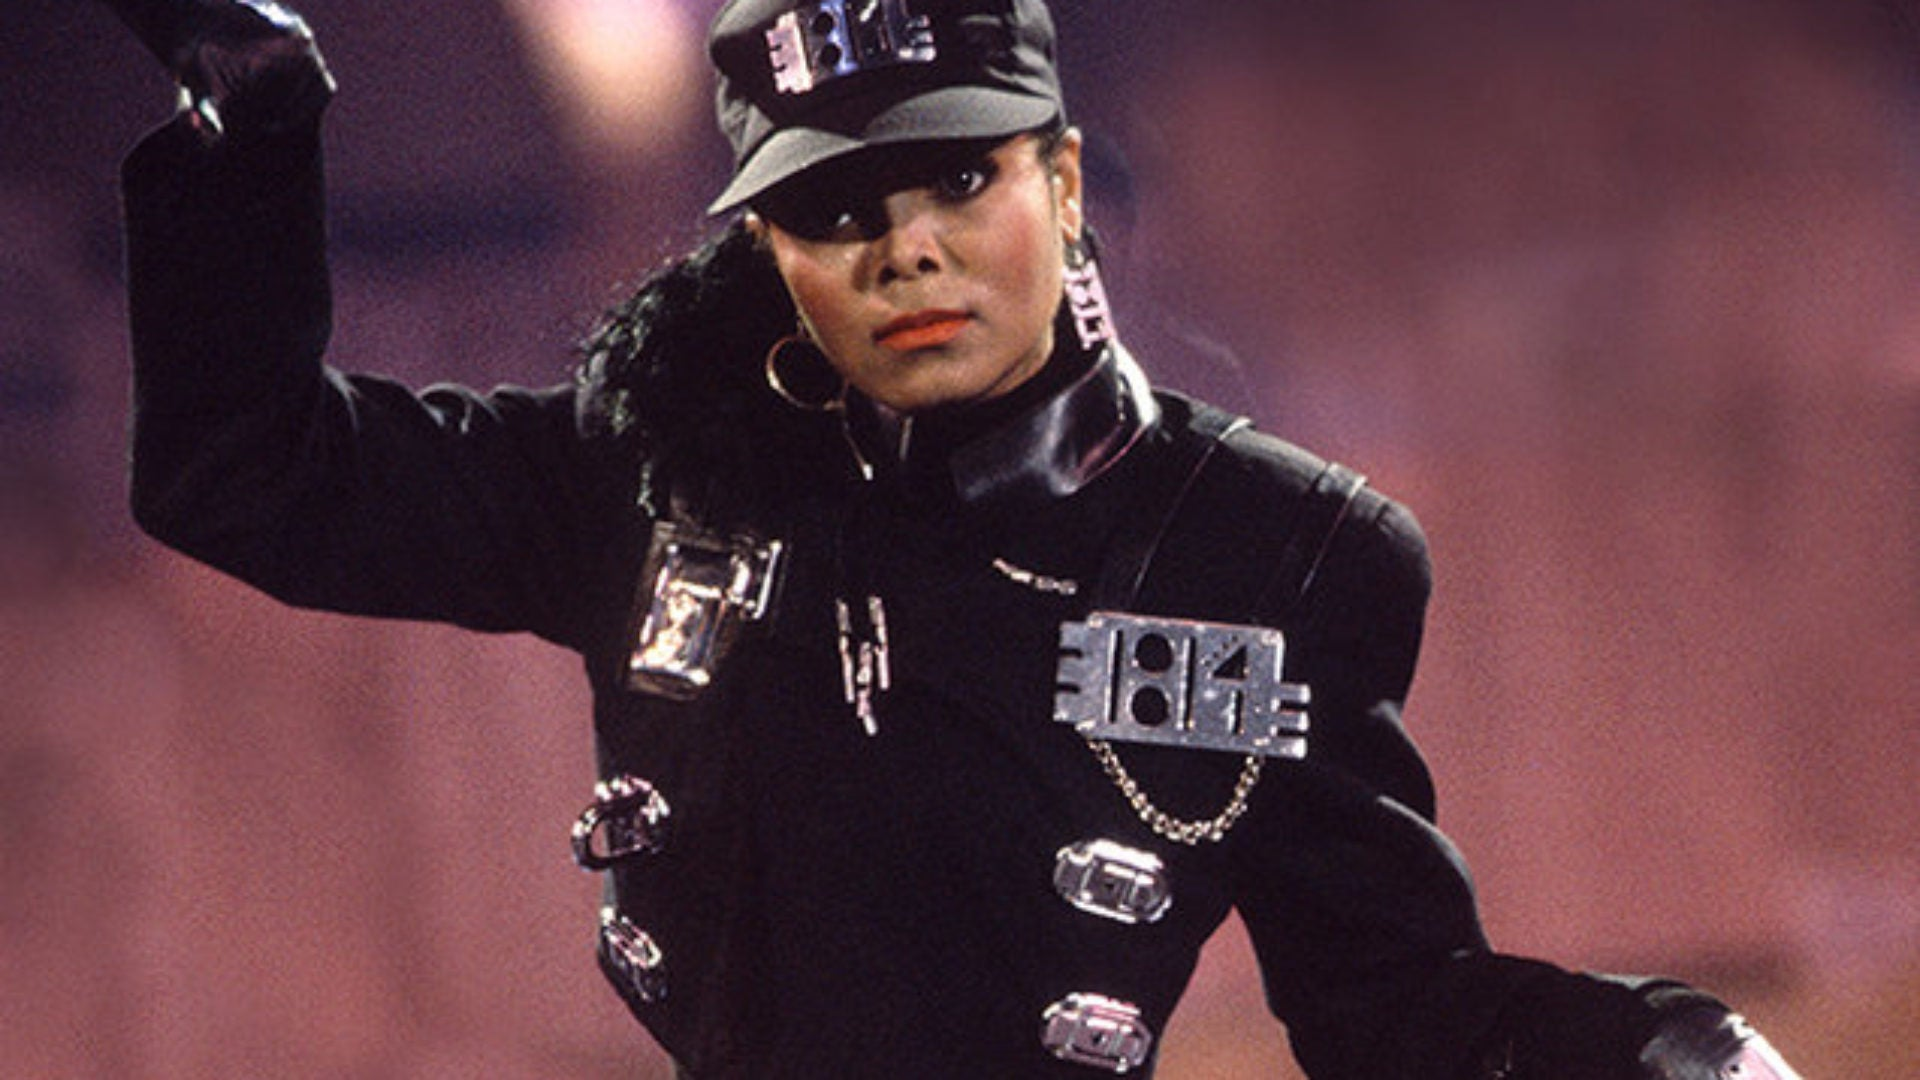 Thirty Years Later: Janet Jackson's 'Rhythm Nation' Album Is Still 'Alright'